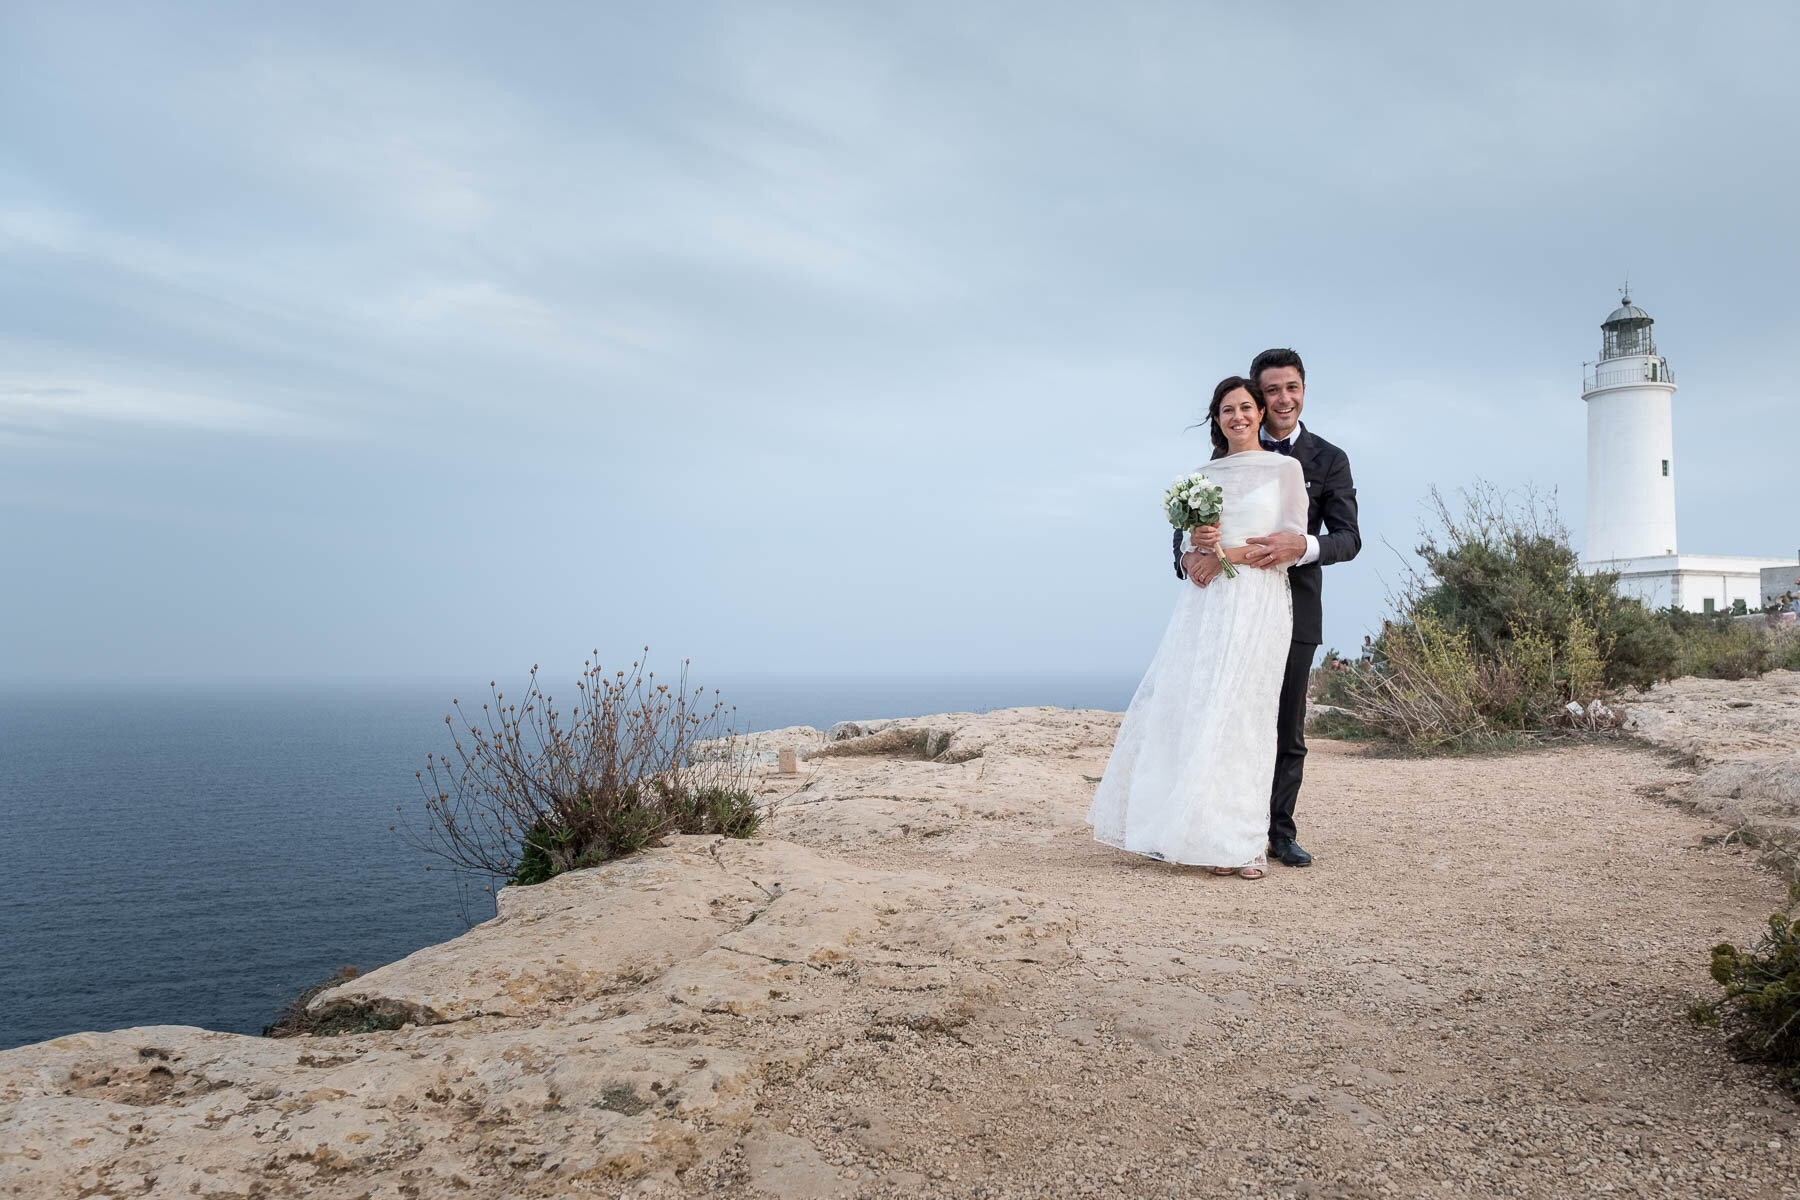 wedding formentera chezz gerdi 18.jpg